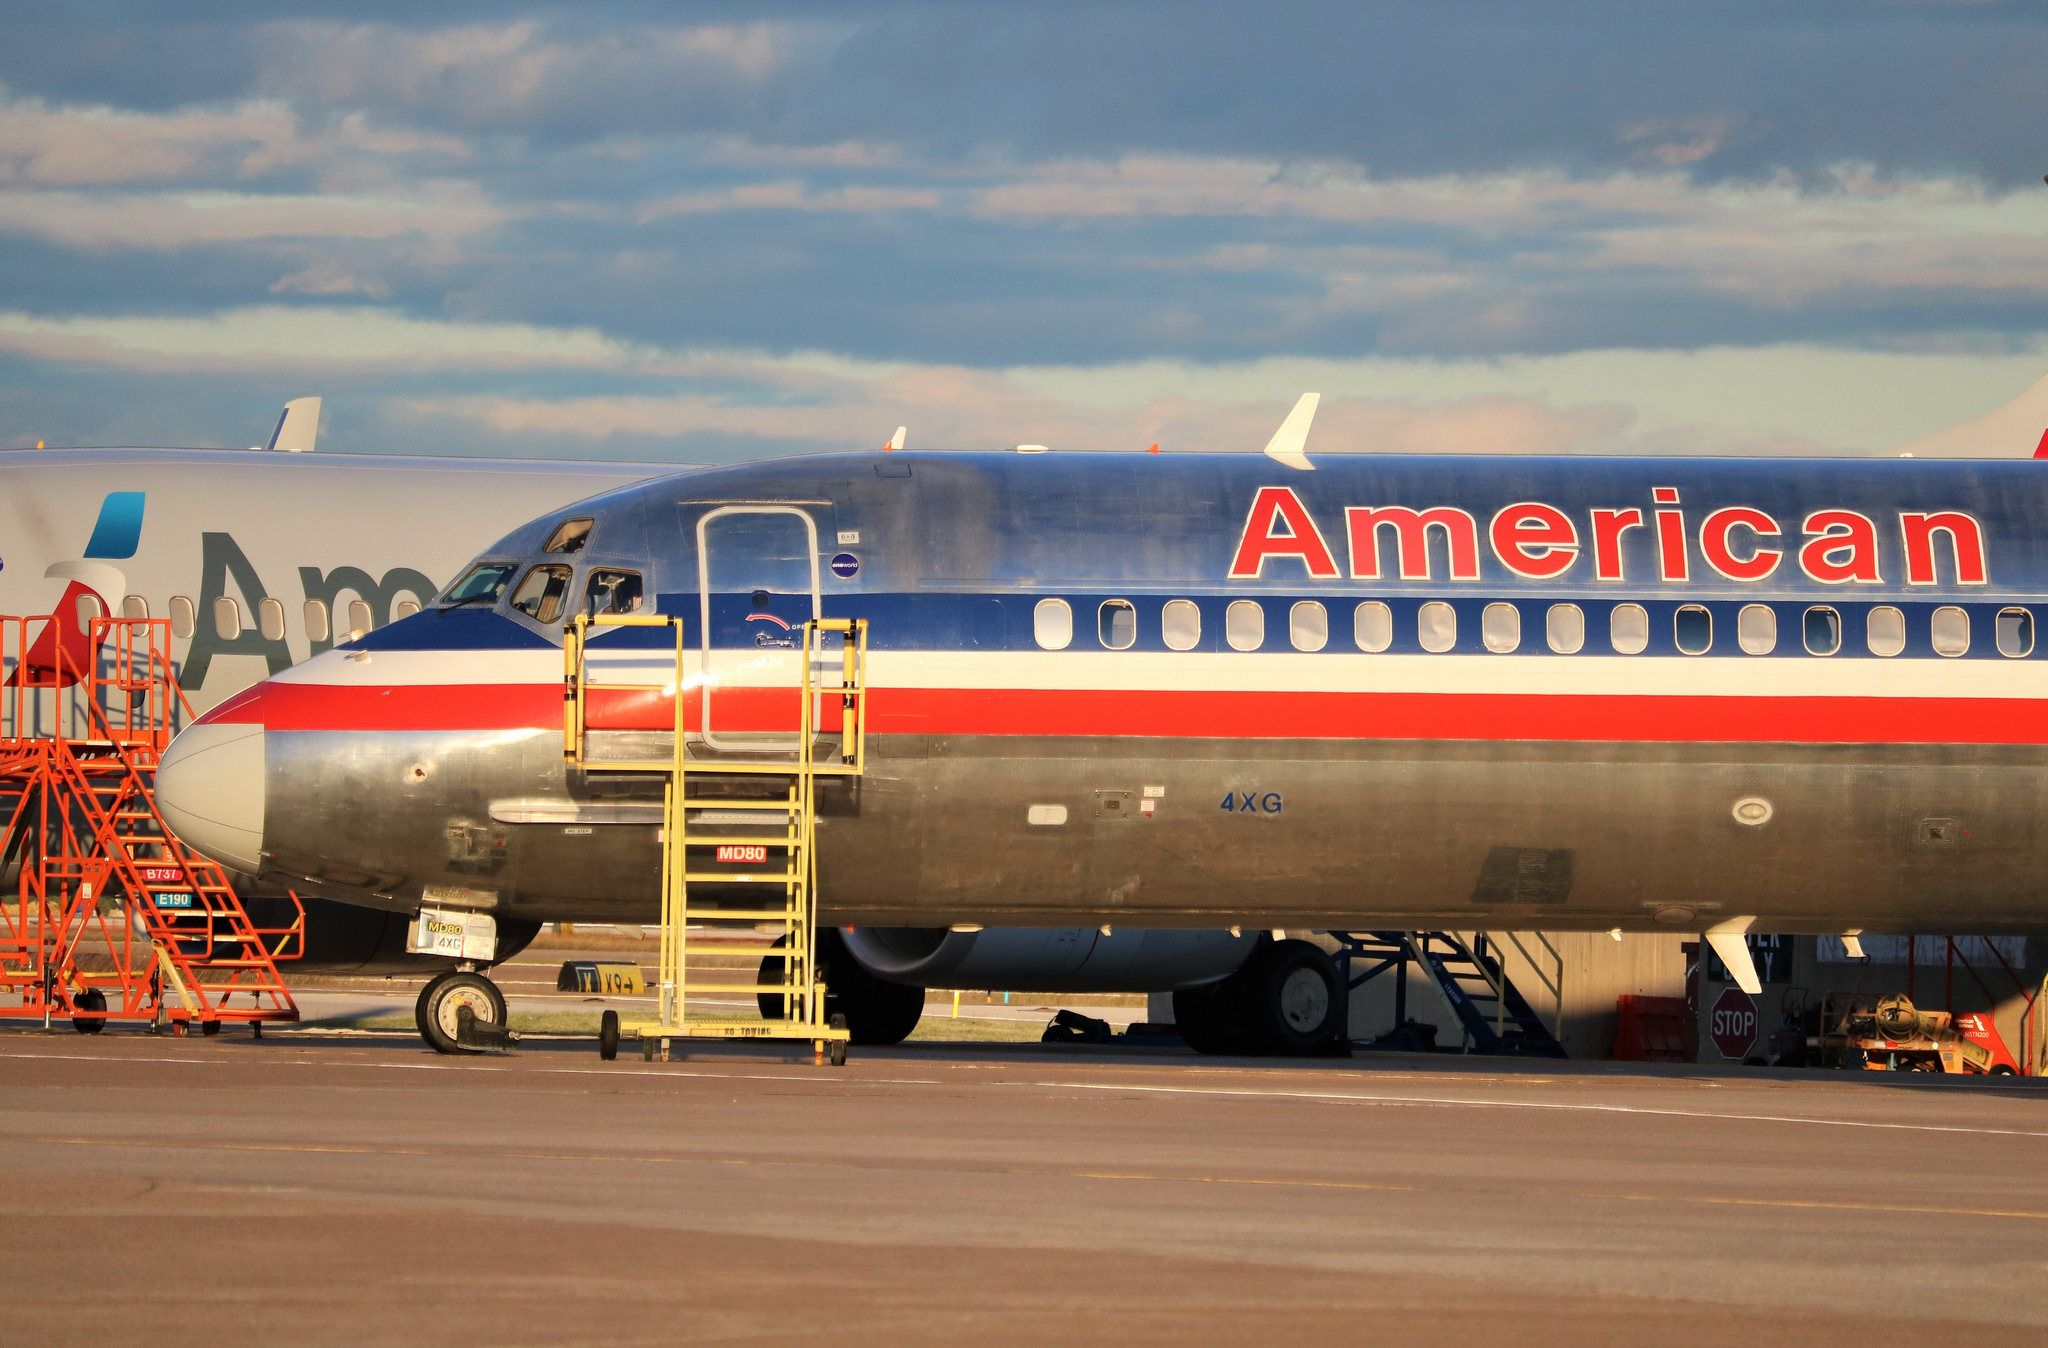 American Airlines MD83 American, Passenger aircraft